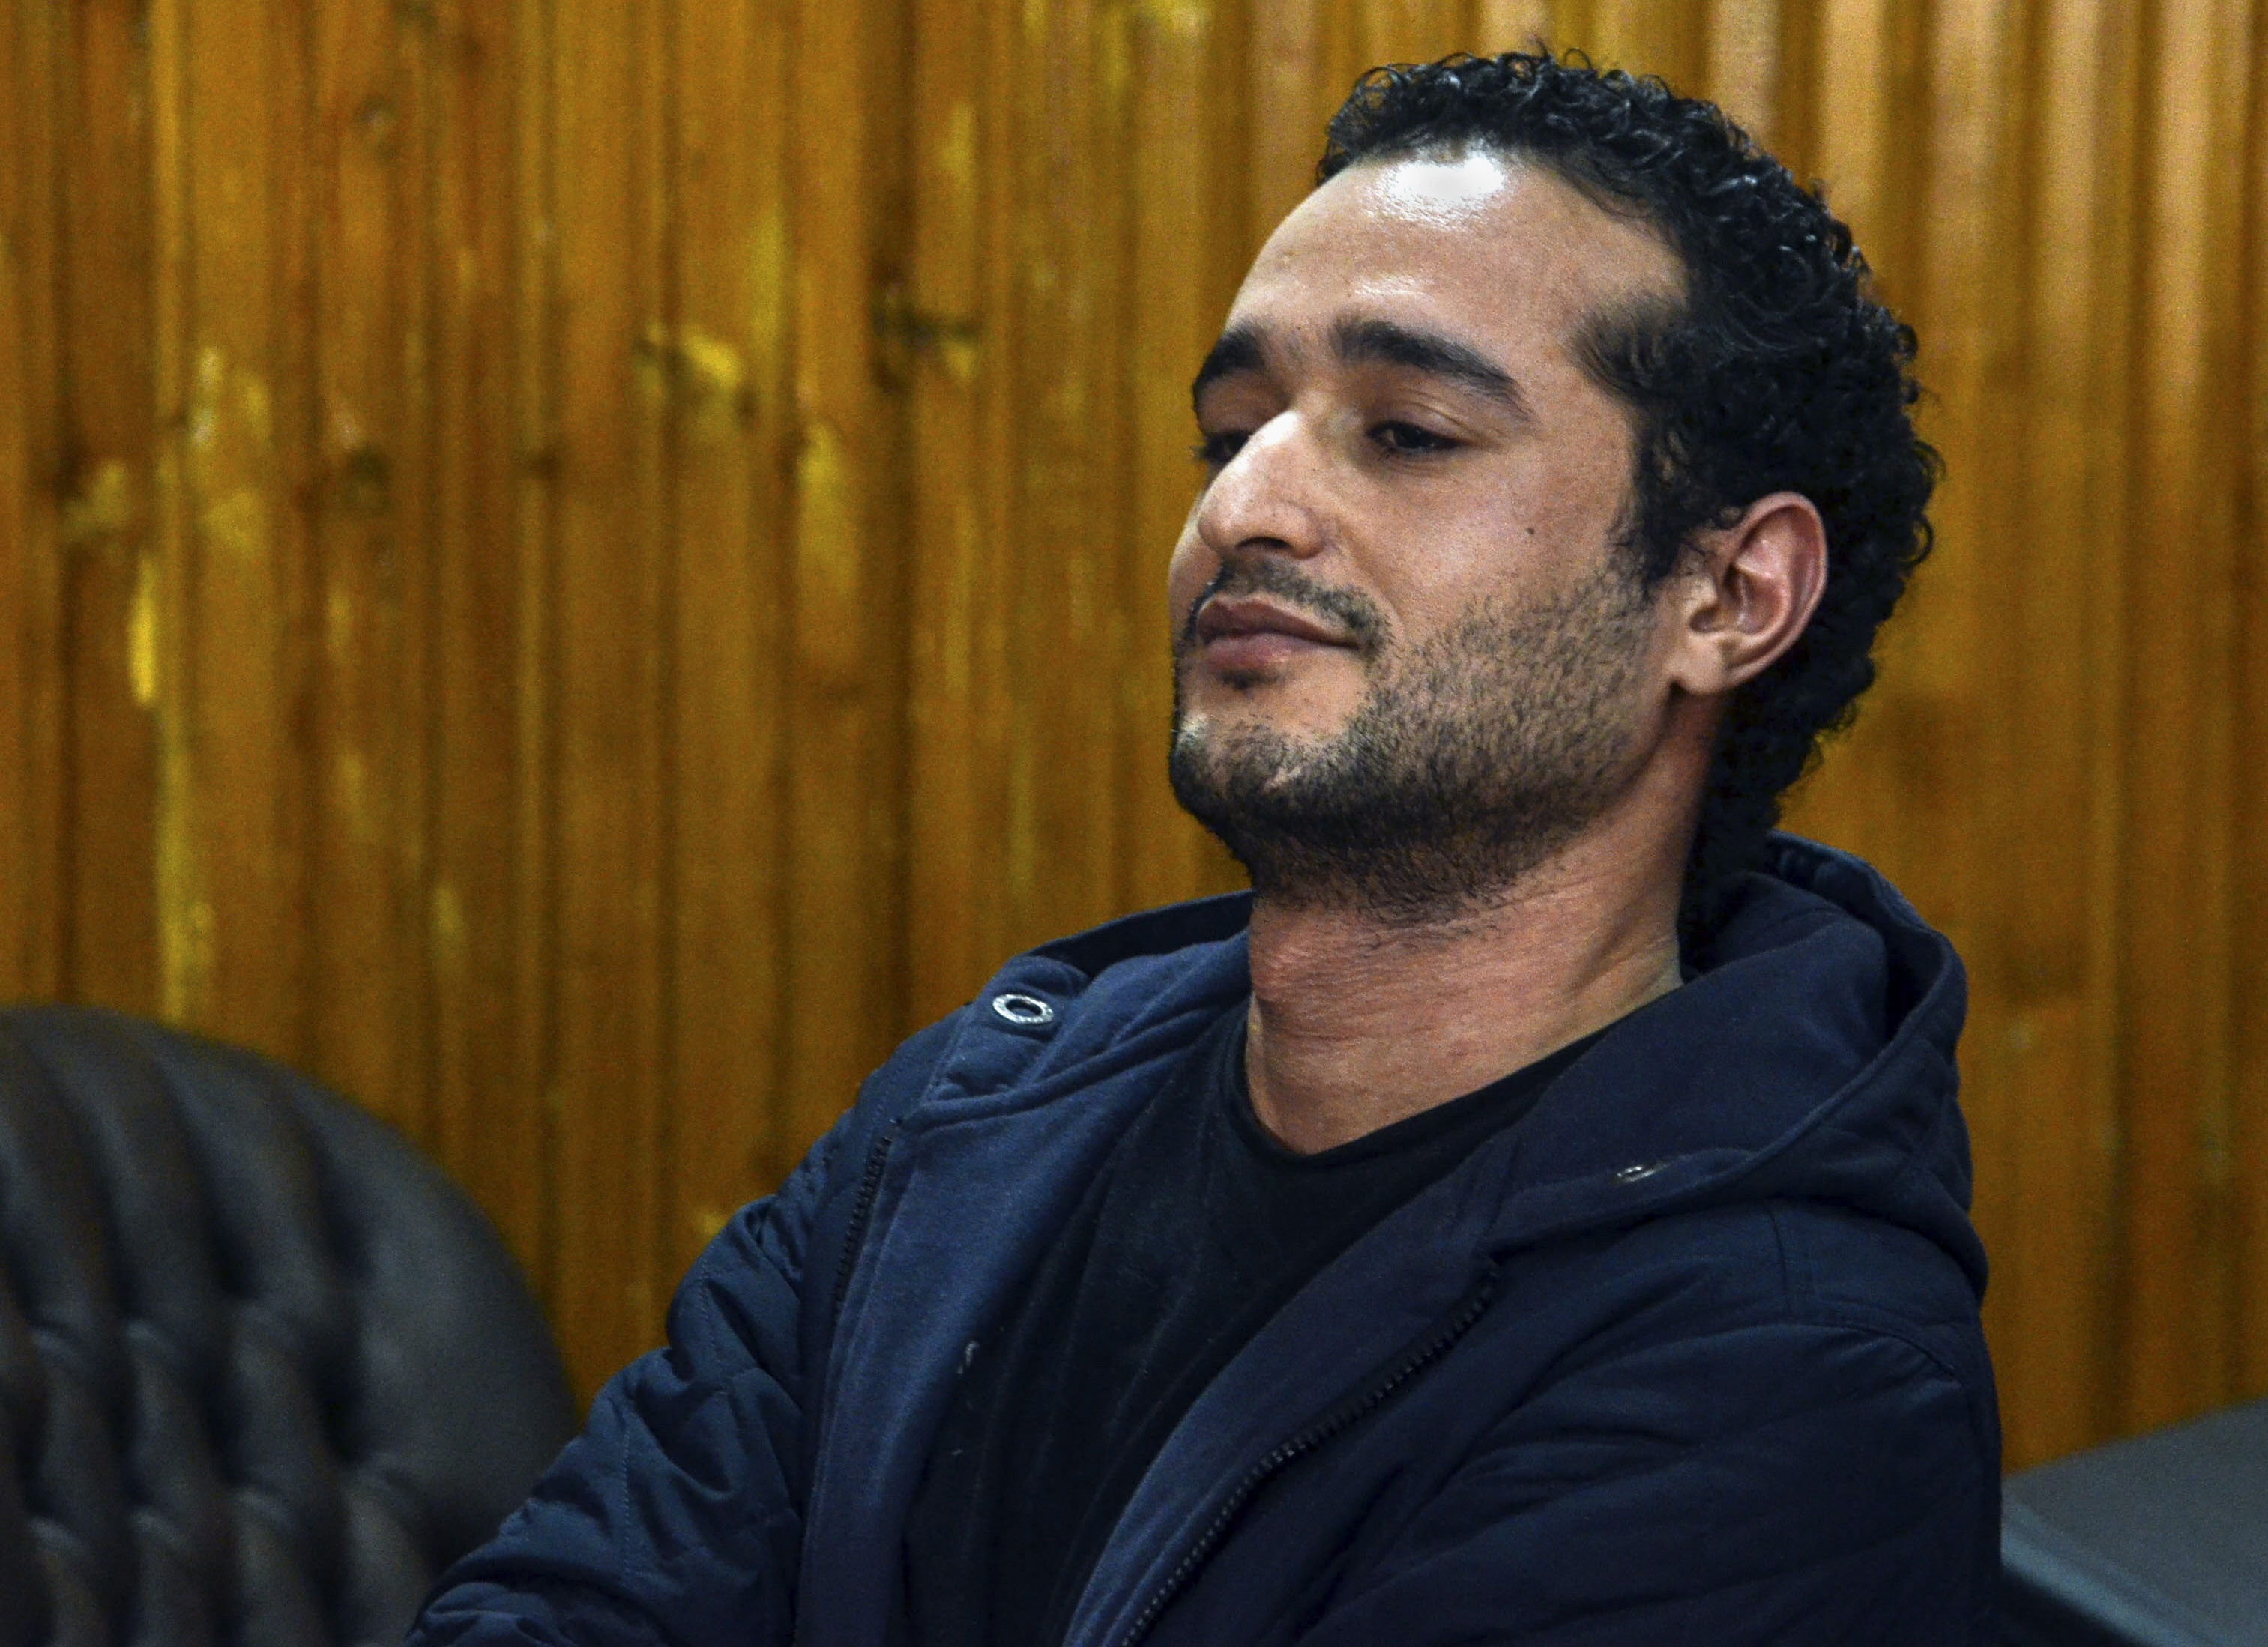 230 Egyptian Activists, Including Ahmed Douma, Get Life Sentences